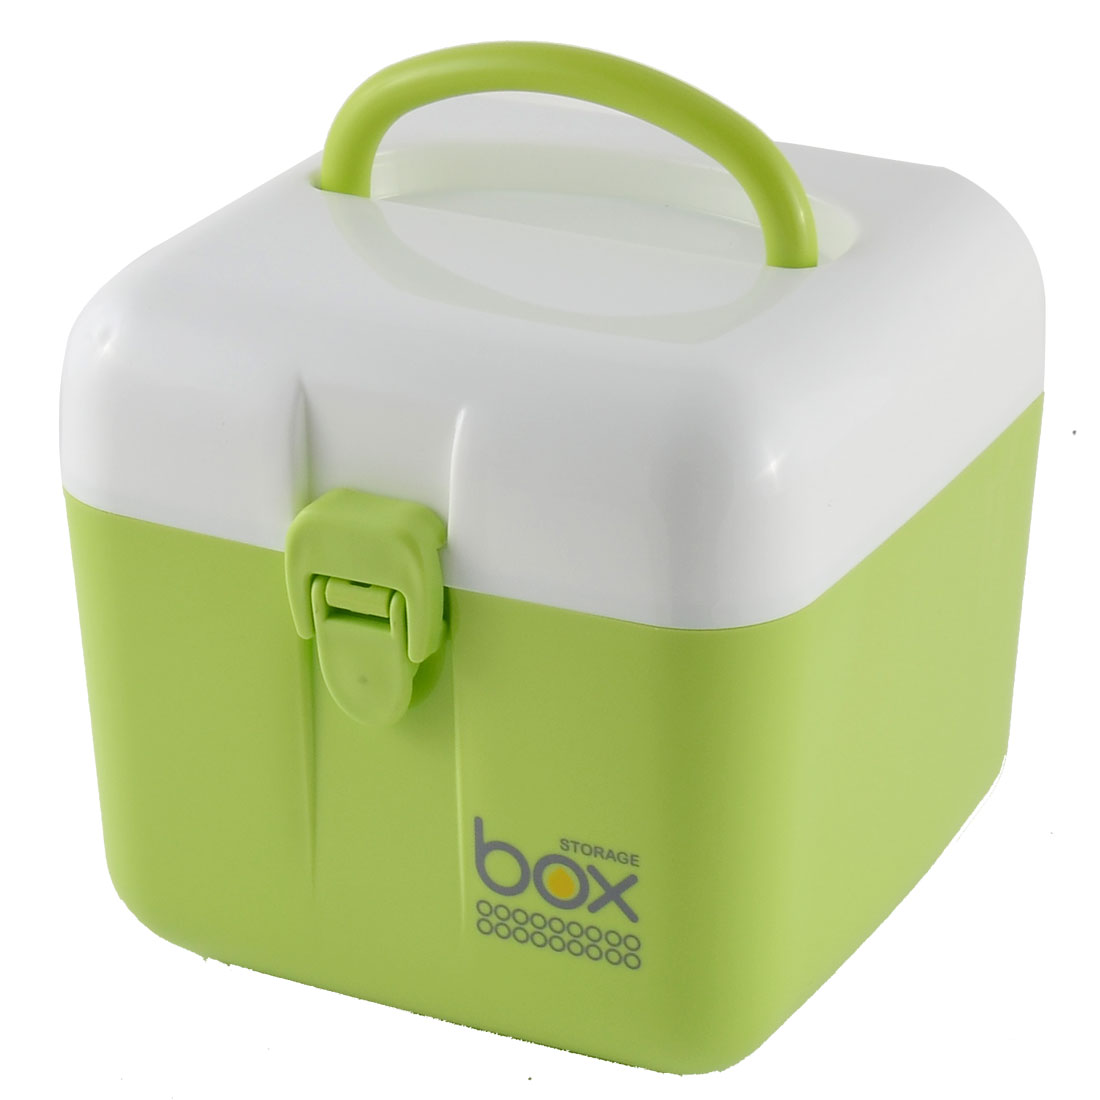 Office Household Jewelry Plastic Square Storage Box Case Holder Organizer Container Green